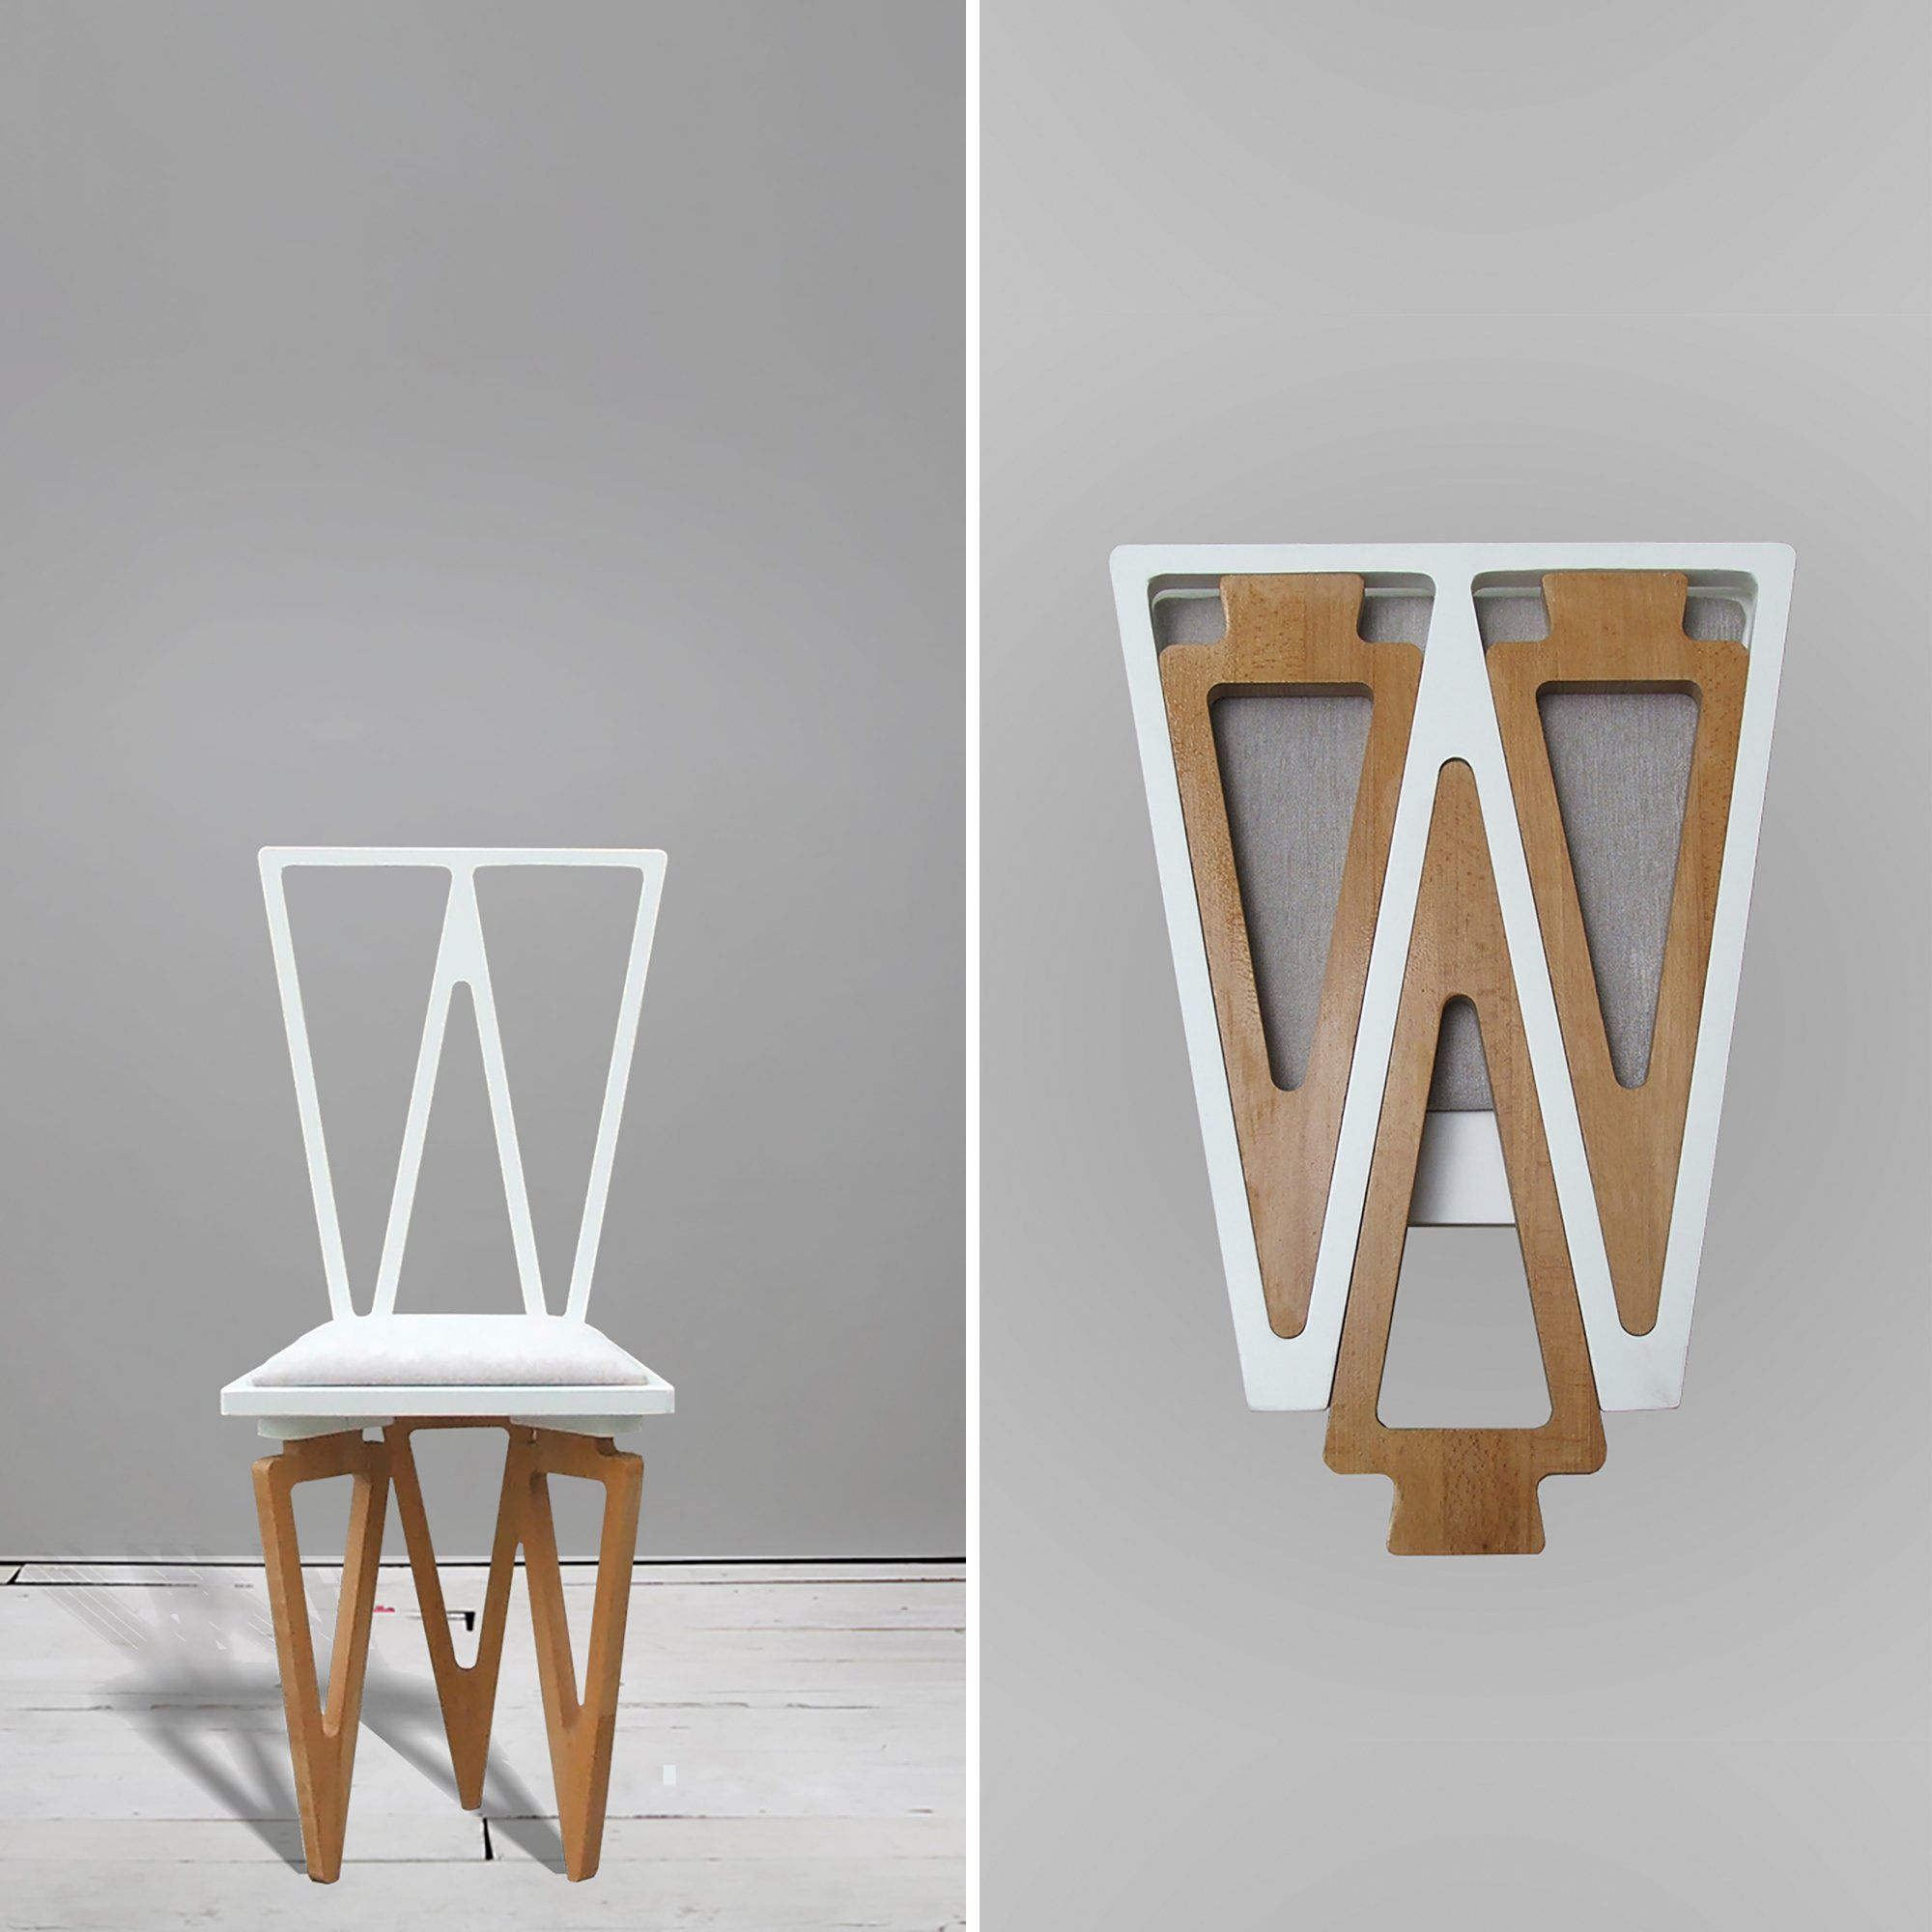 Super Triangle Solid Wood Folding Chair Office Furniture Design Unemploymentrelief Wooden Chair Designs For Living Room Unemploymentrelieforg